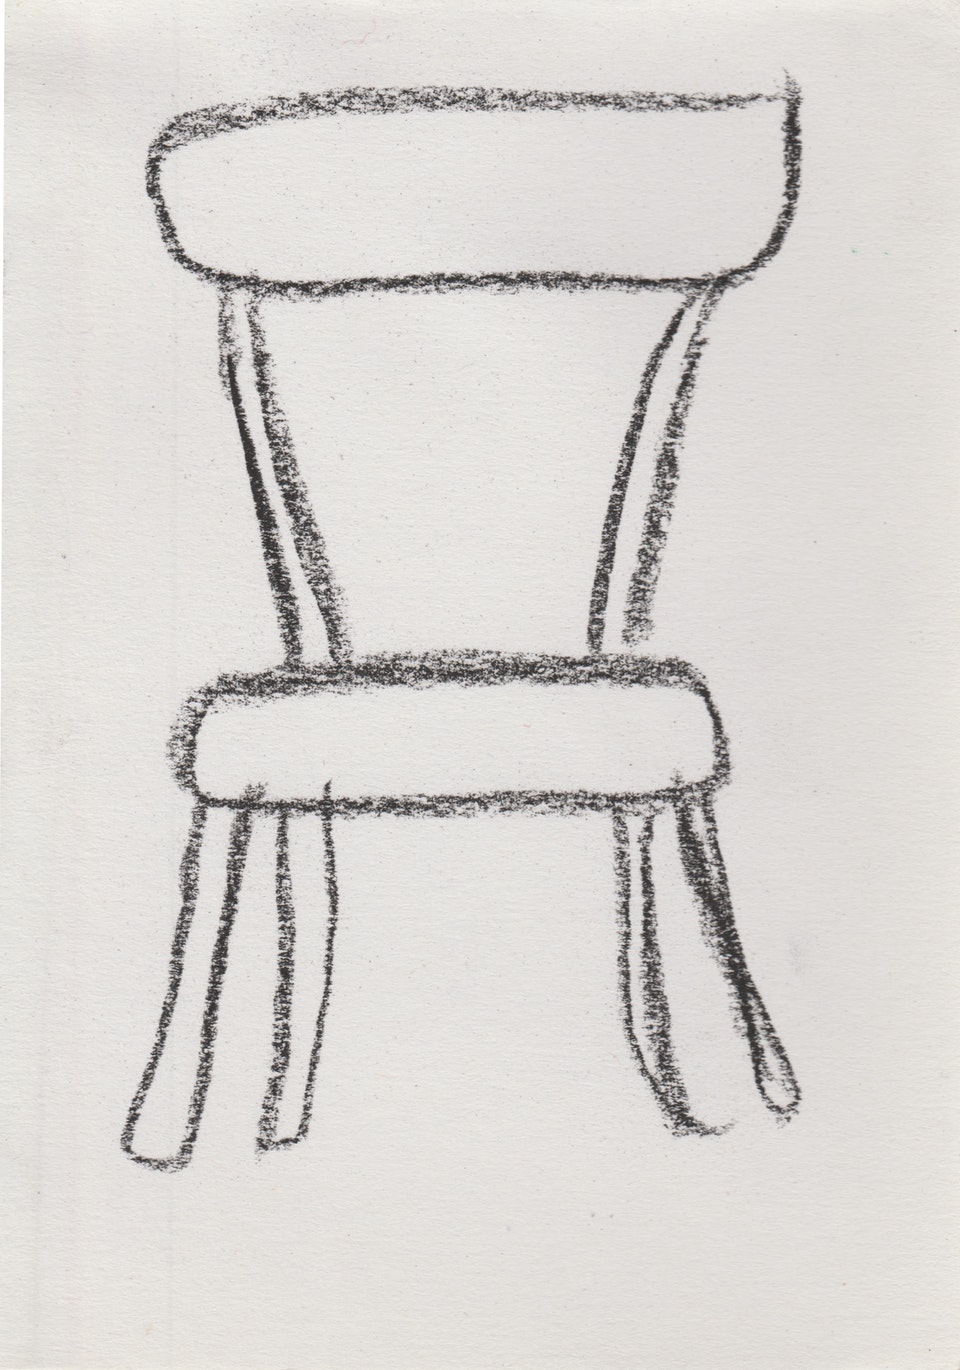 Domestic - Chair - 2020 - Charcoal on Paper - 10 x 15 cm A6